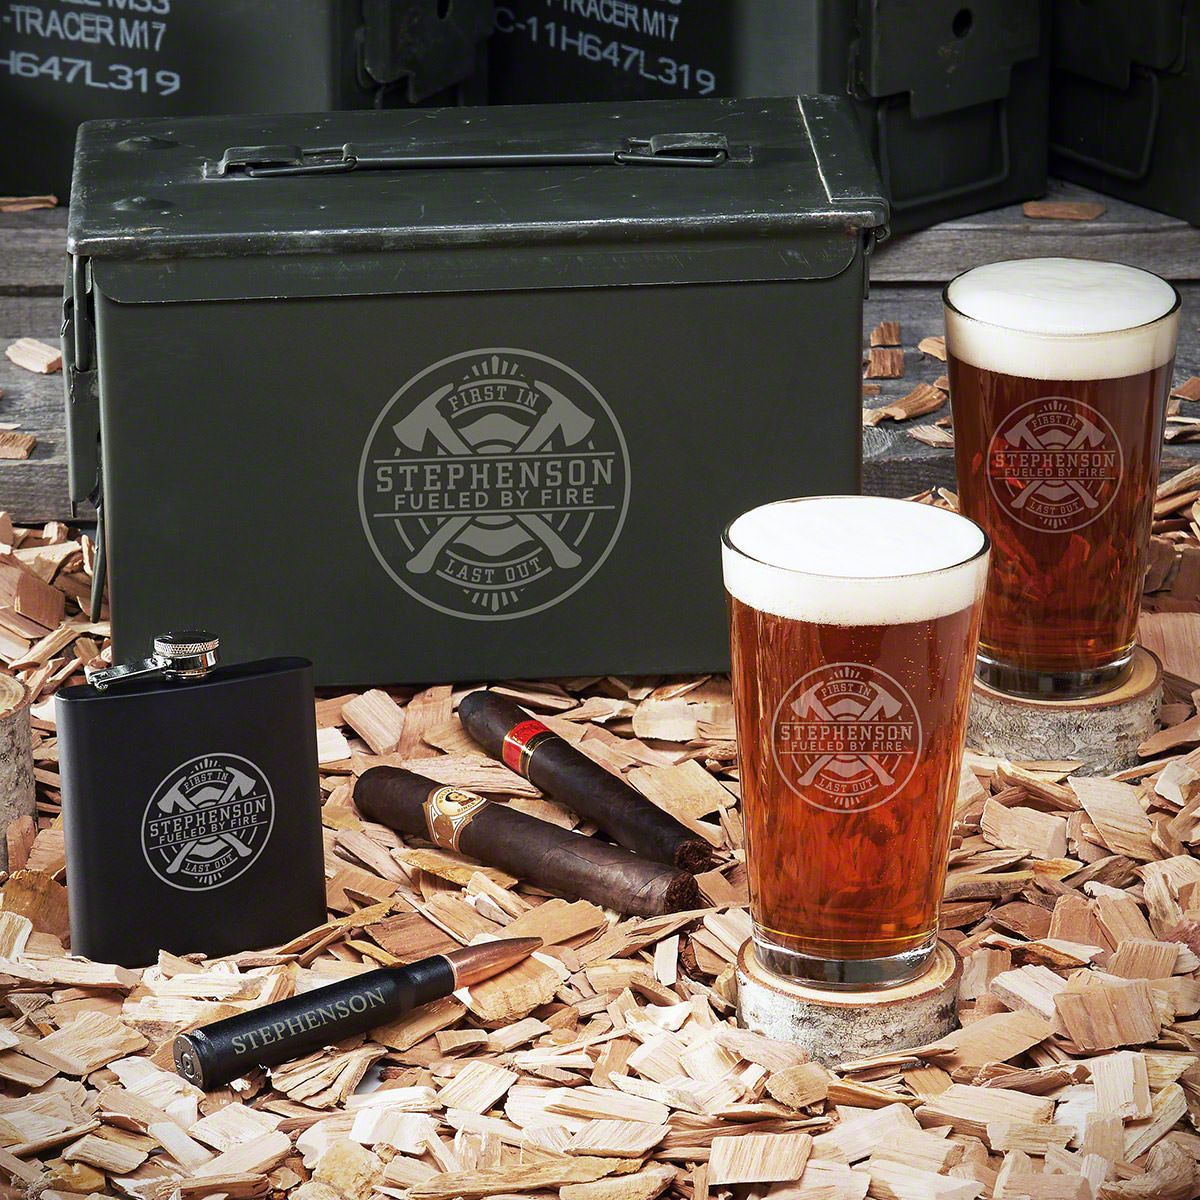 Firefighter Brotherhood Custom 50 Cal Ammo Box Set of Gifts for Firefighters